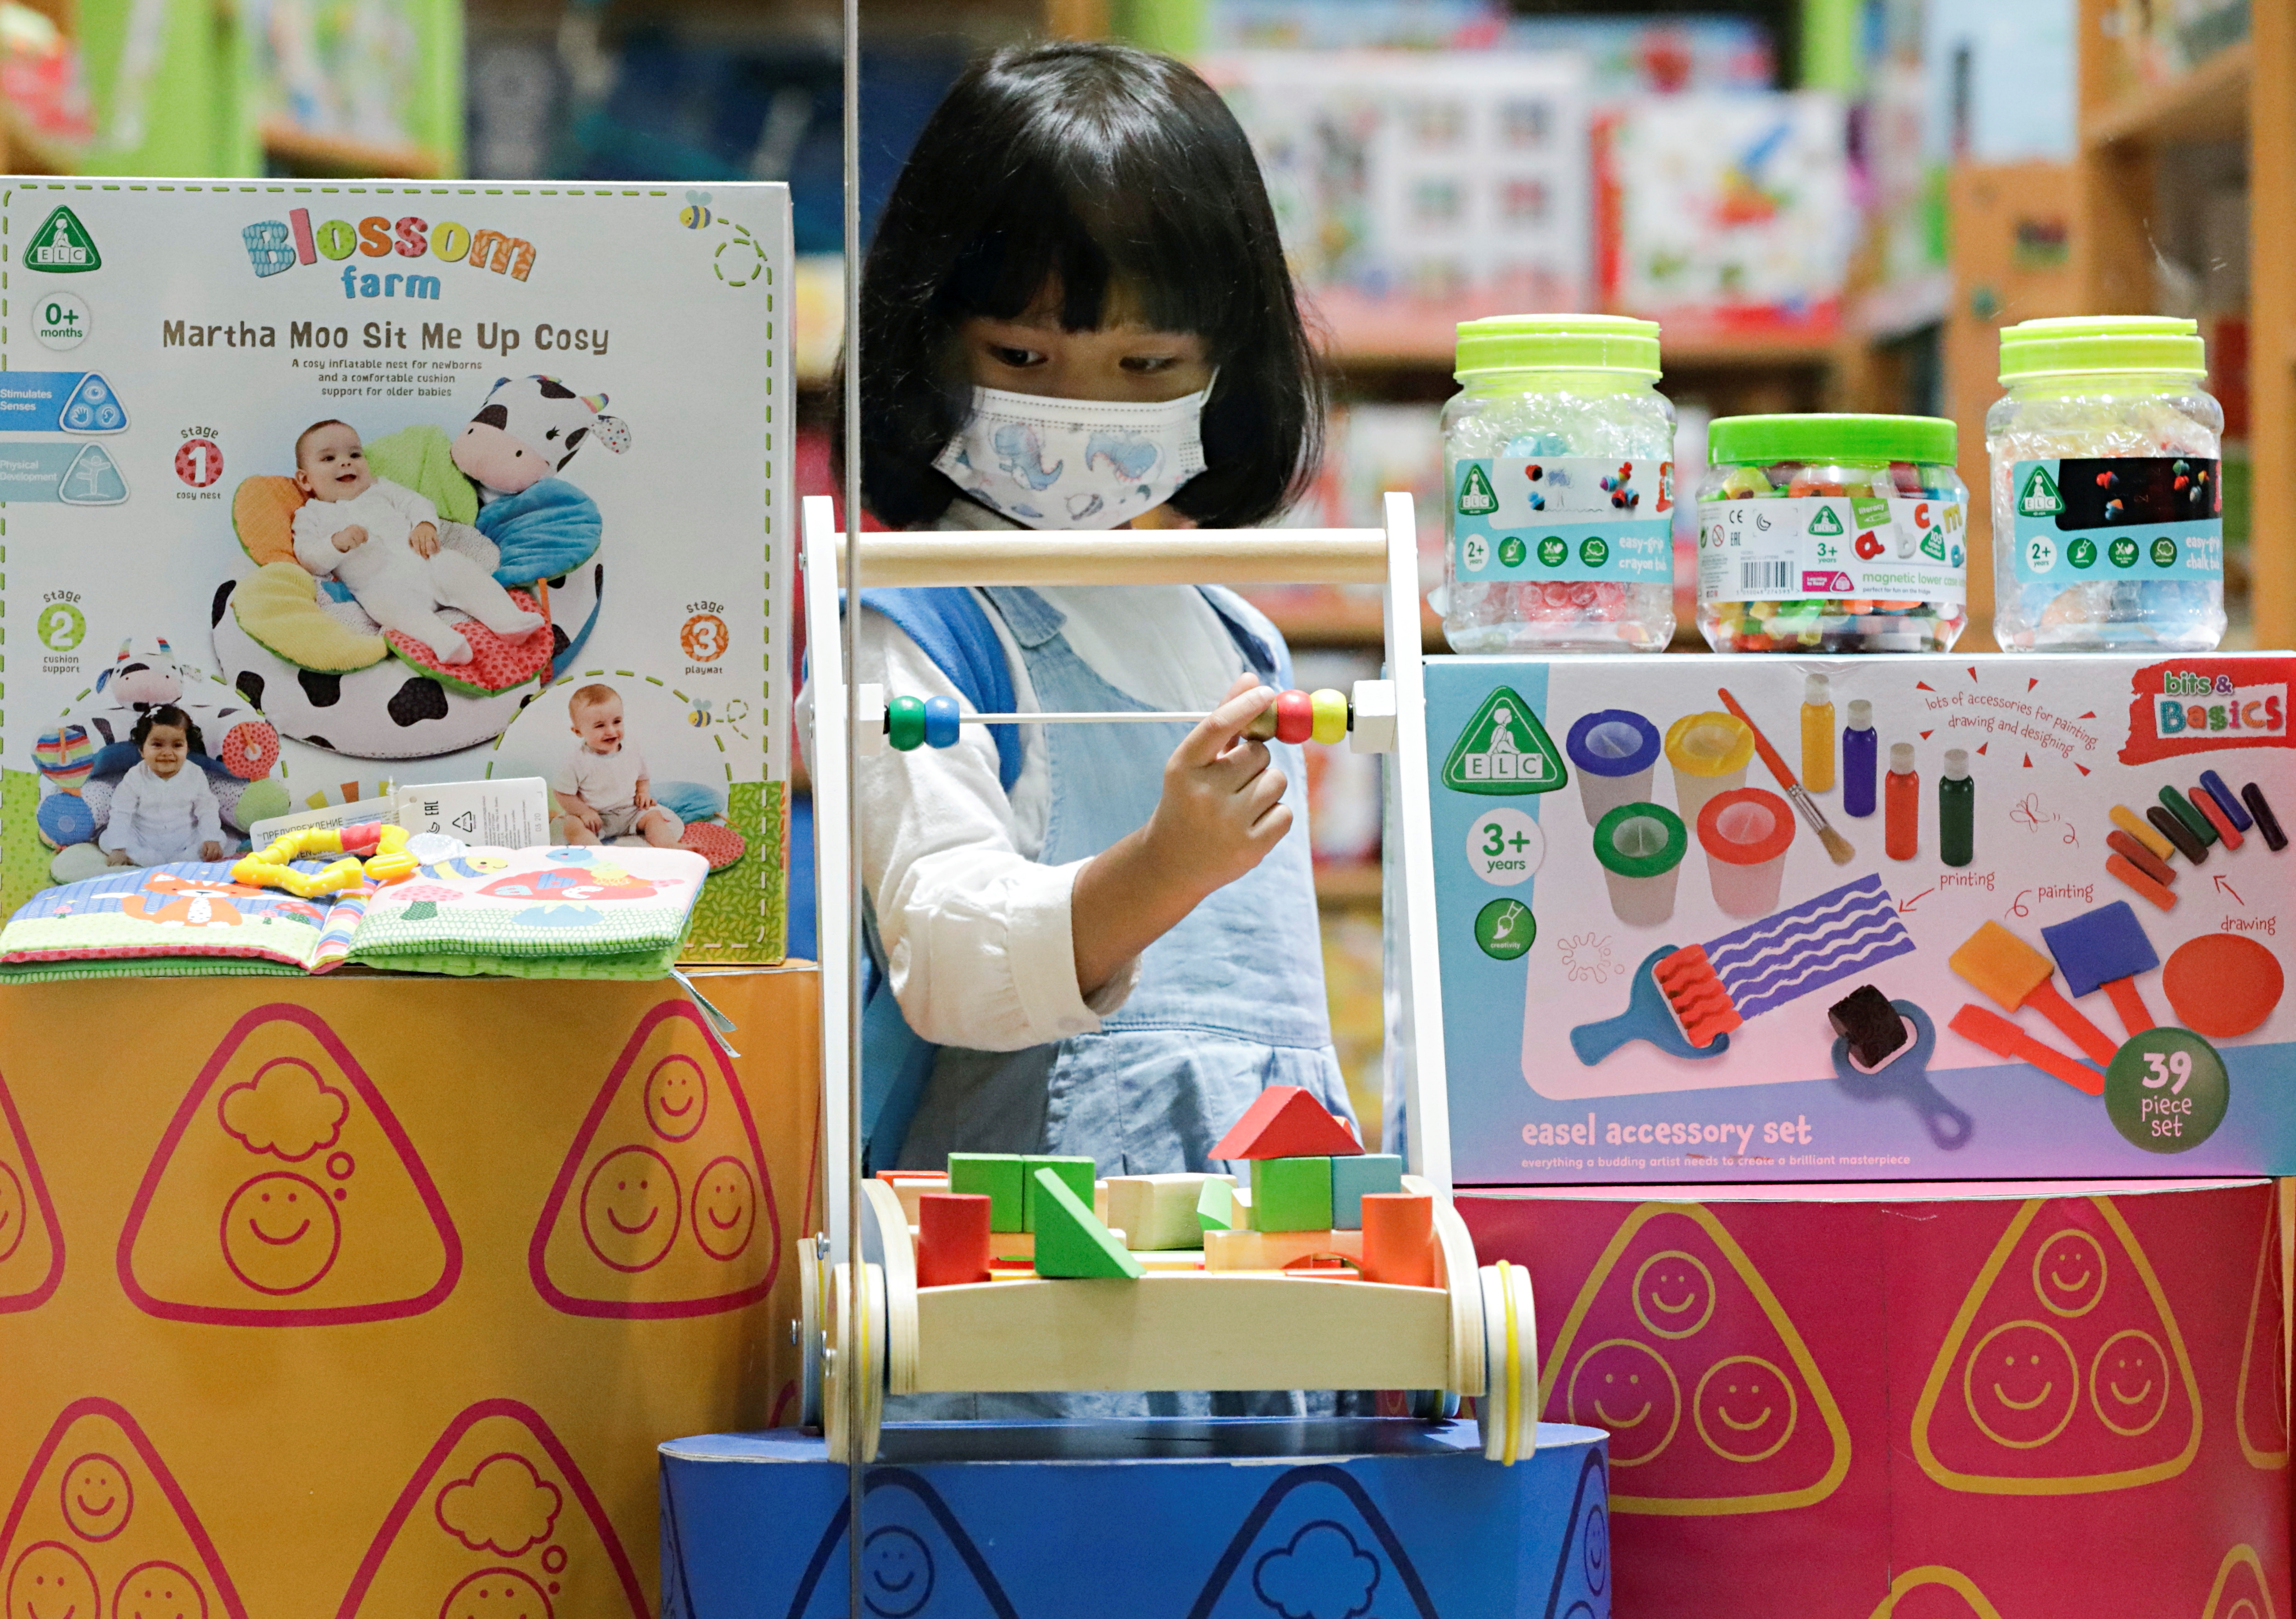 Mezzaluna, 5, plays at a toys outlet after the ease of restrictions with a new policy under which children under the age of 12 are allowed to enter at a Kota Kasablanka shopping mall, amid the coronavirus disease (COVID-19) pandemic in Jakarta, Indonesia, September 22, 2021. REUTERS/Ajeng Dinar Ulfiana